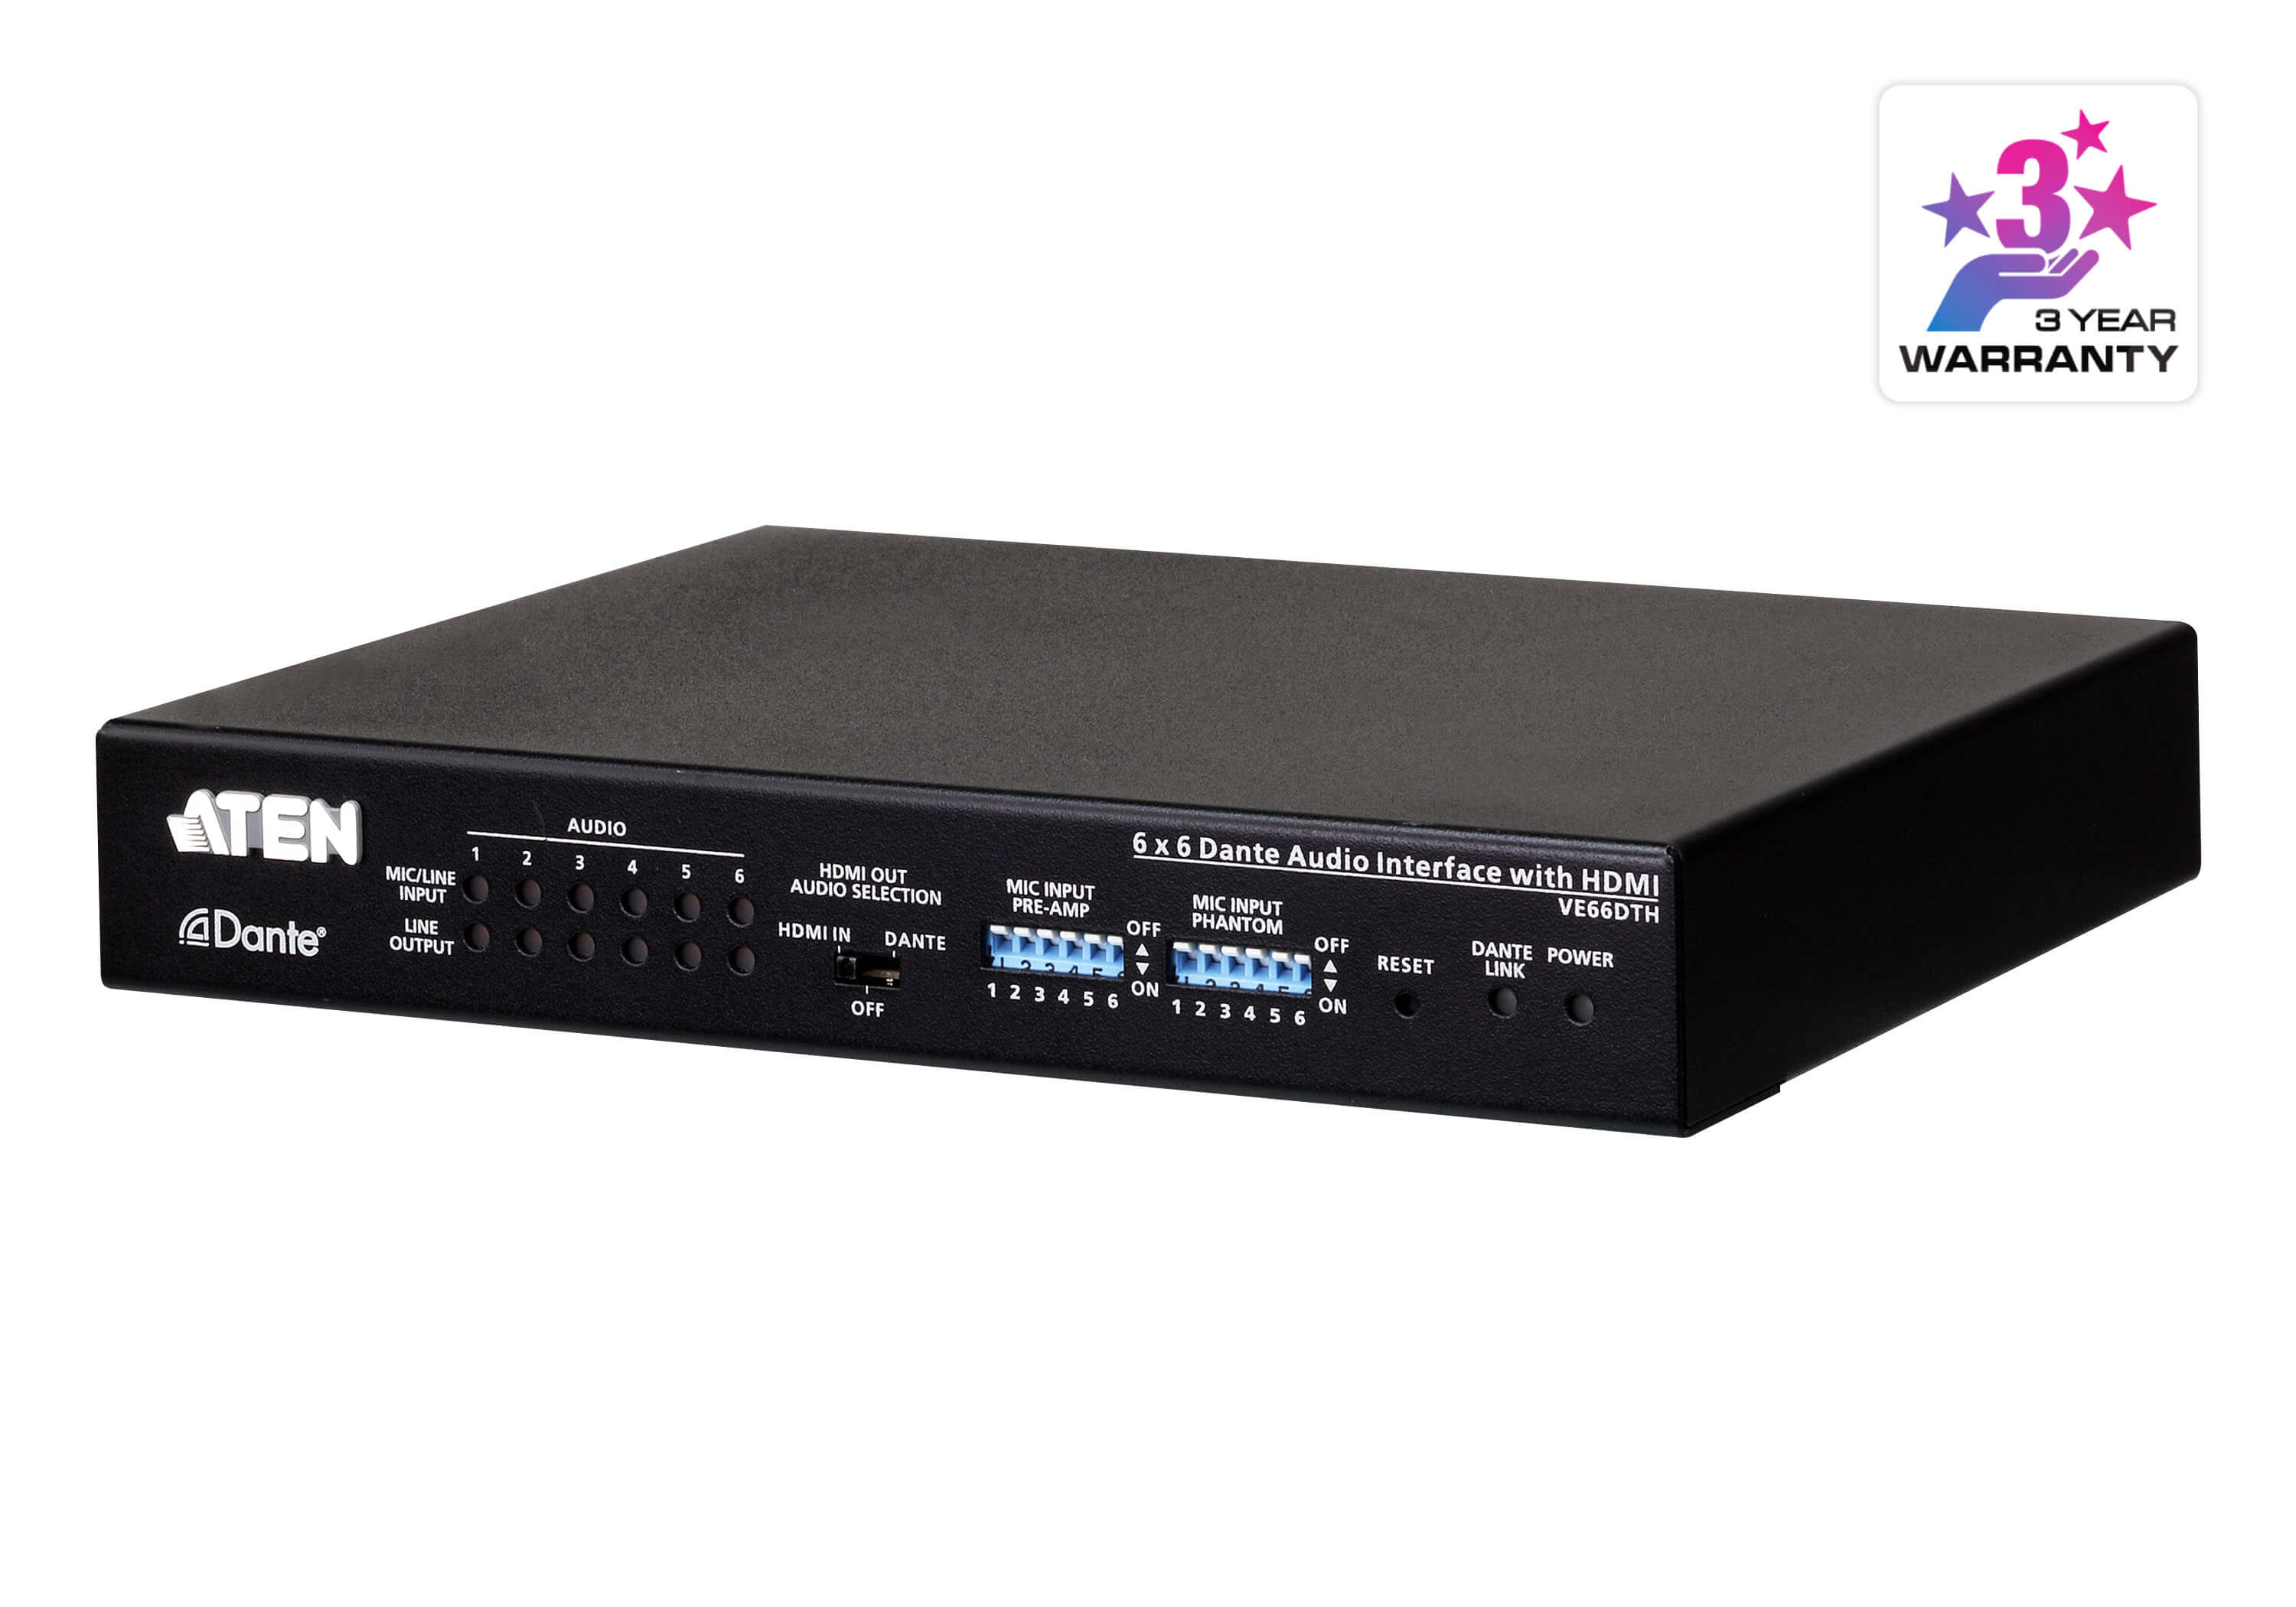 6 x 6 Dante Audio Interface with HDMI-1